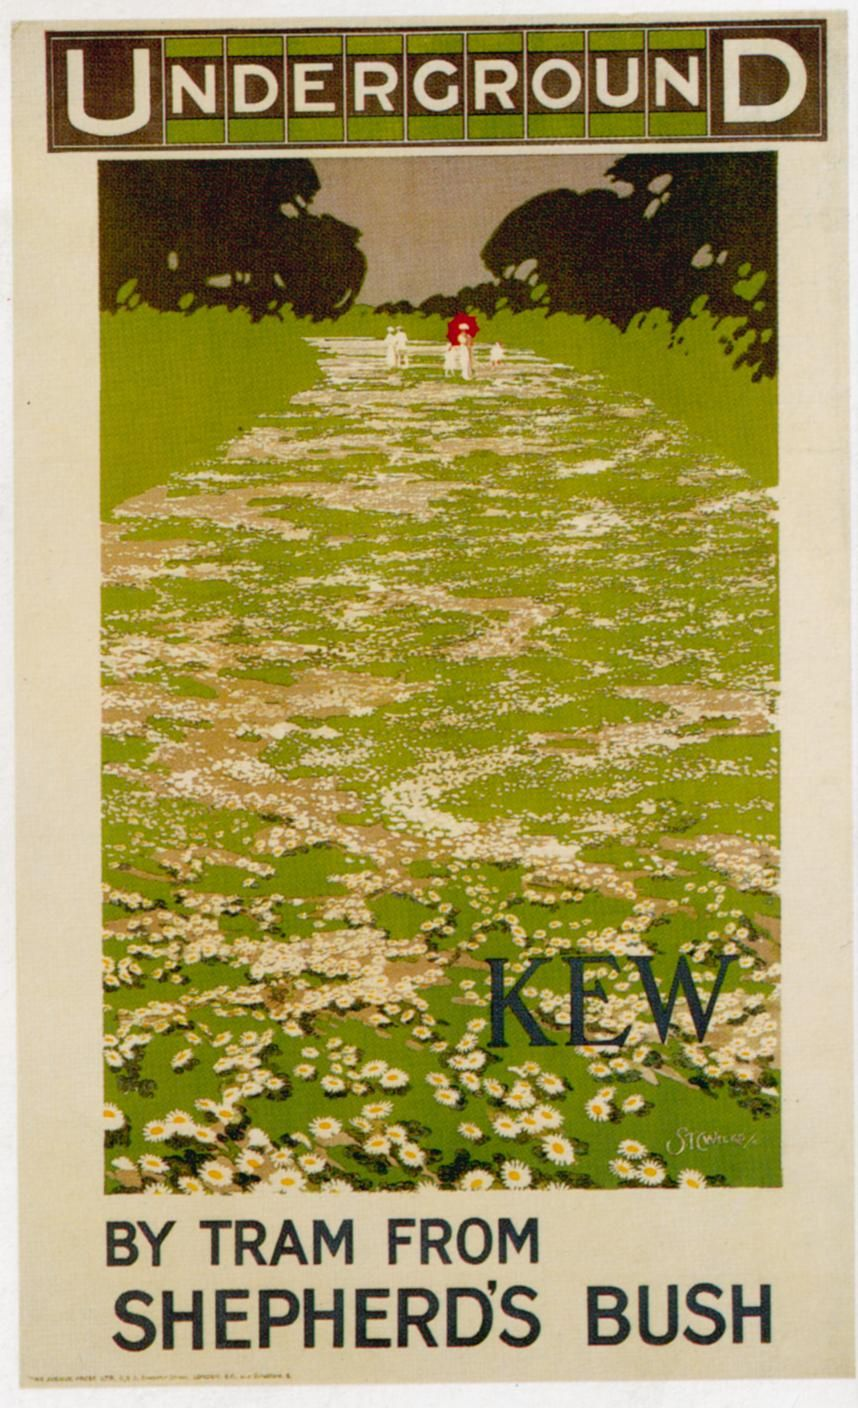 illustrational poster of two people walking a flowered path